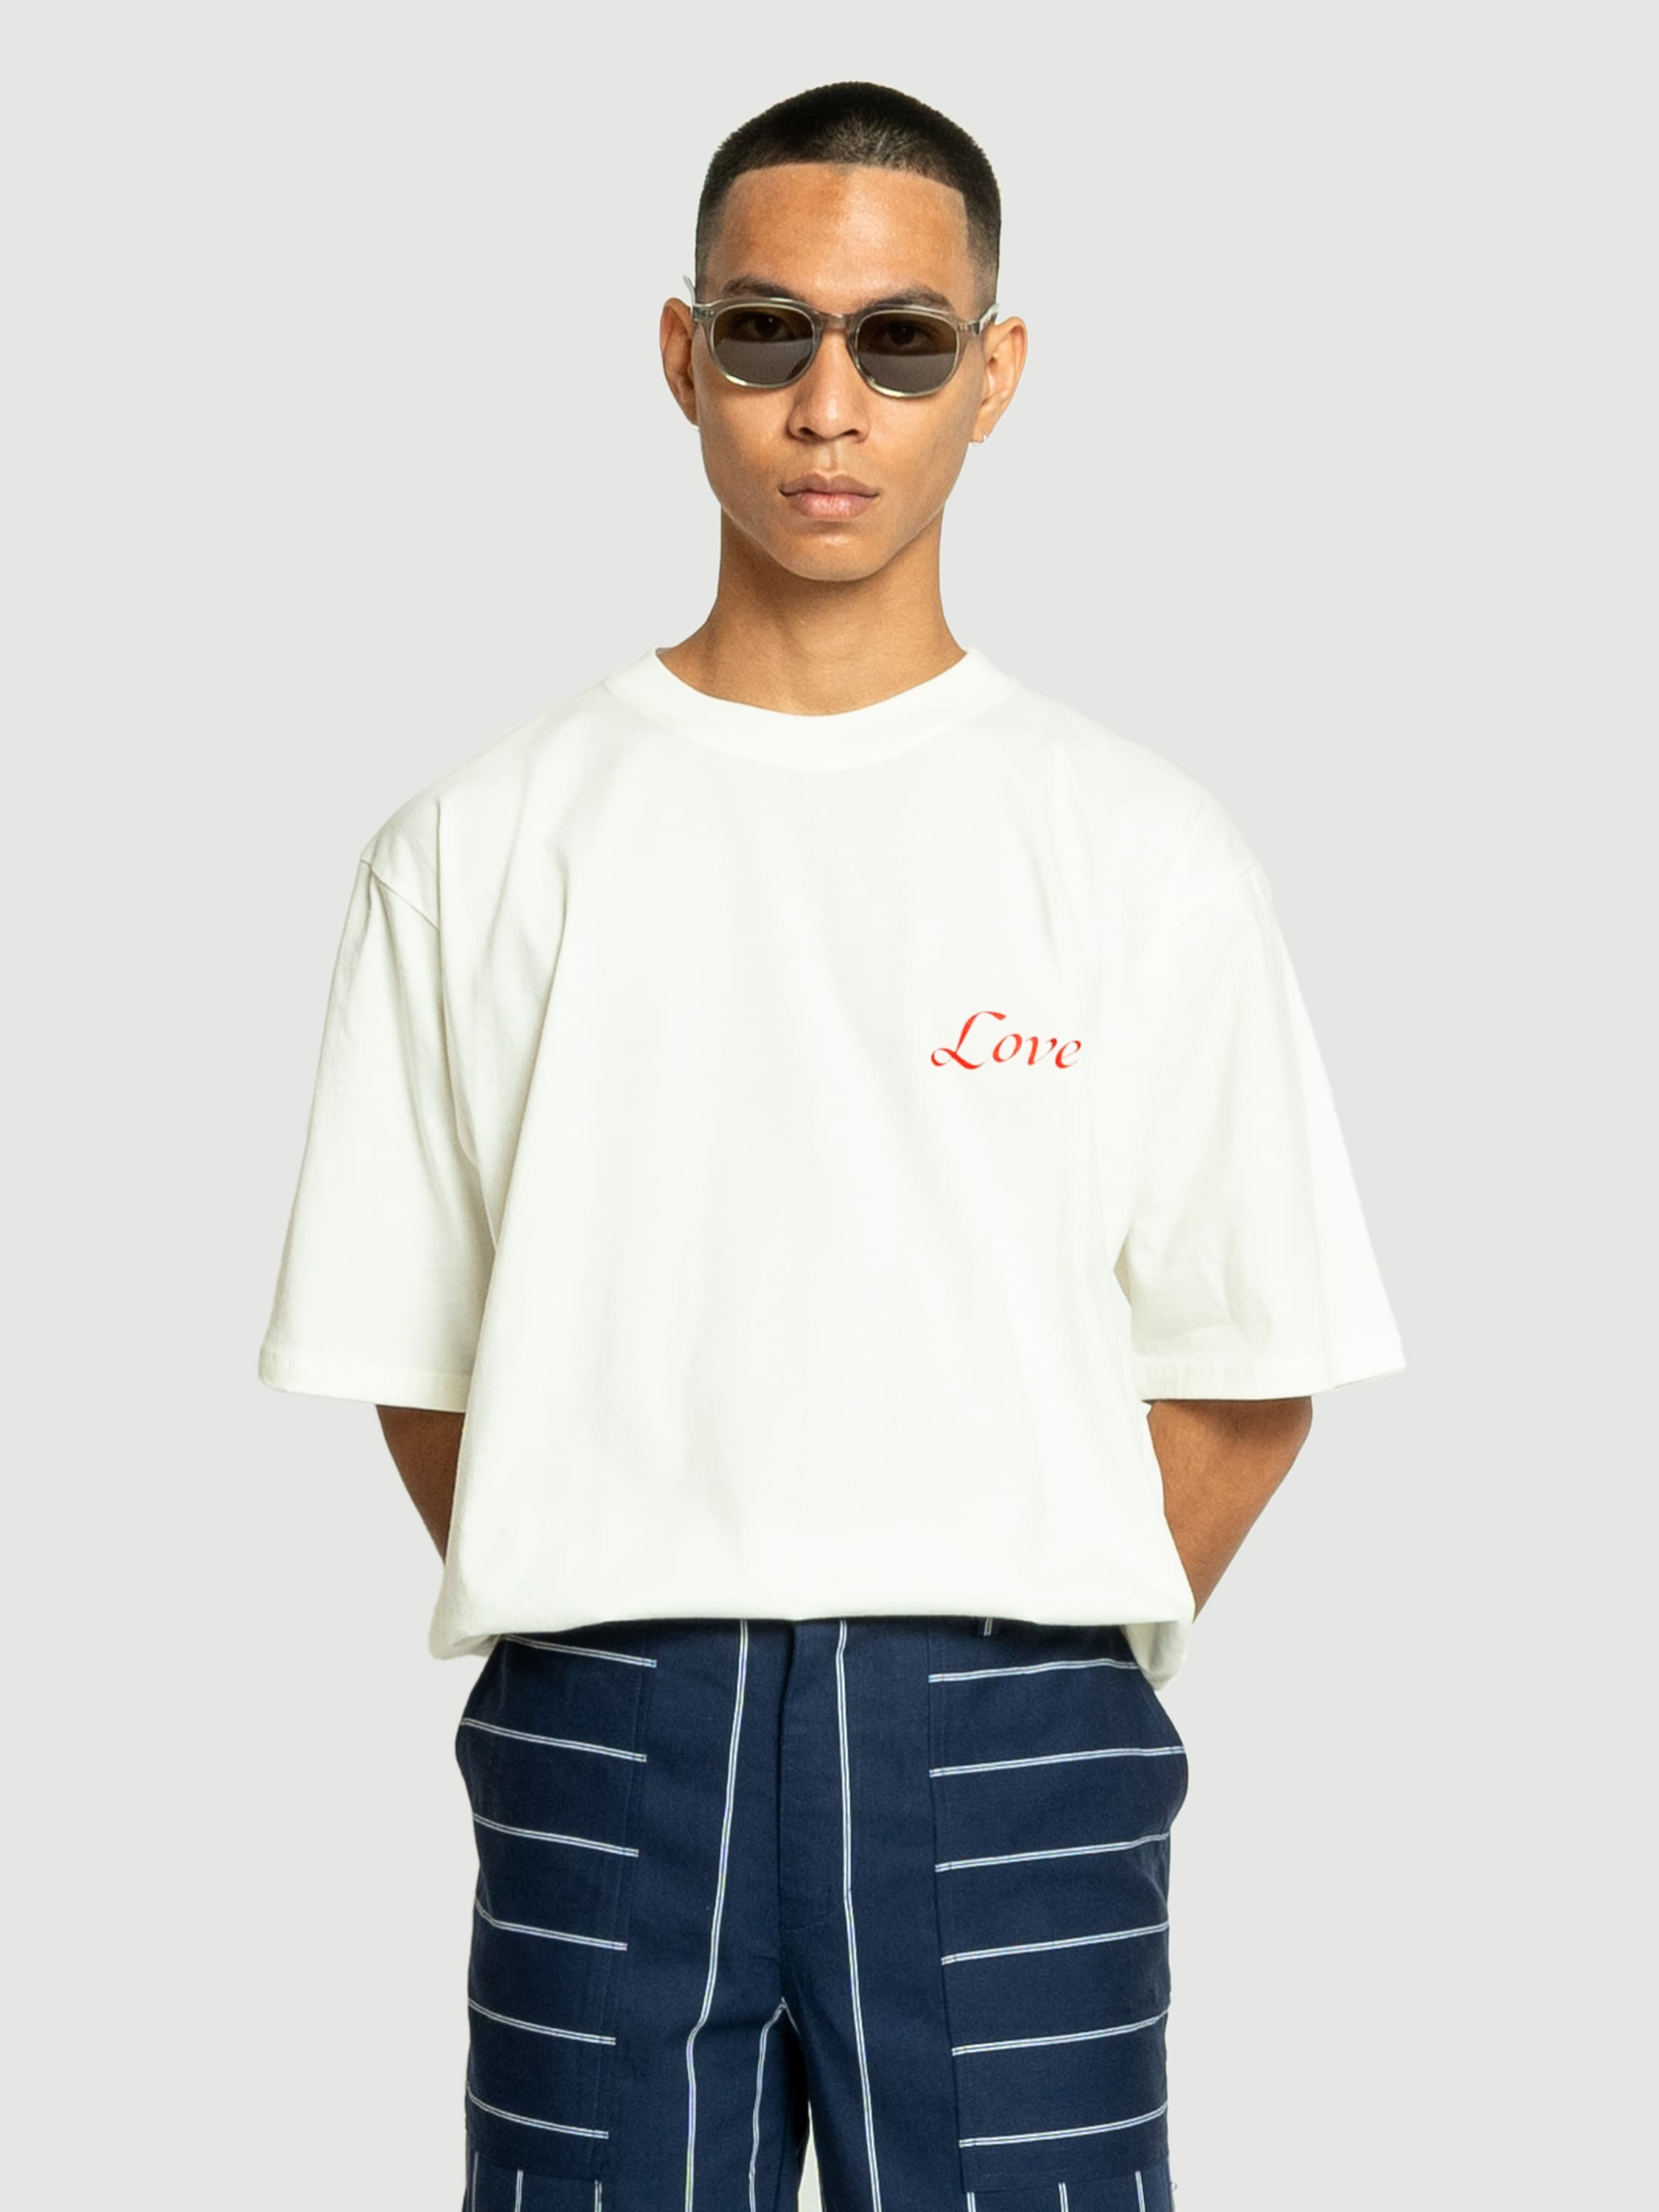 Love Off-White T-shirt